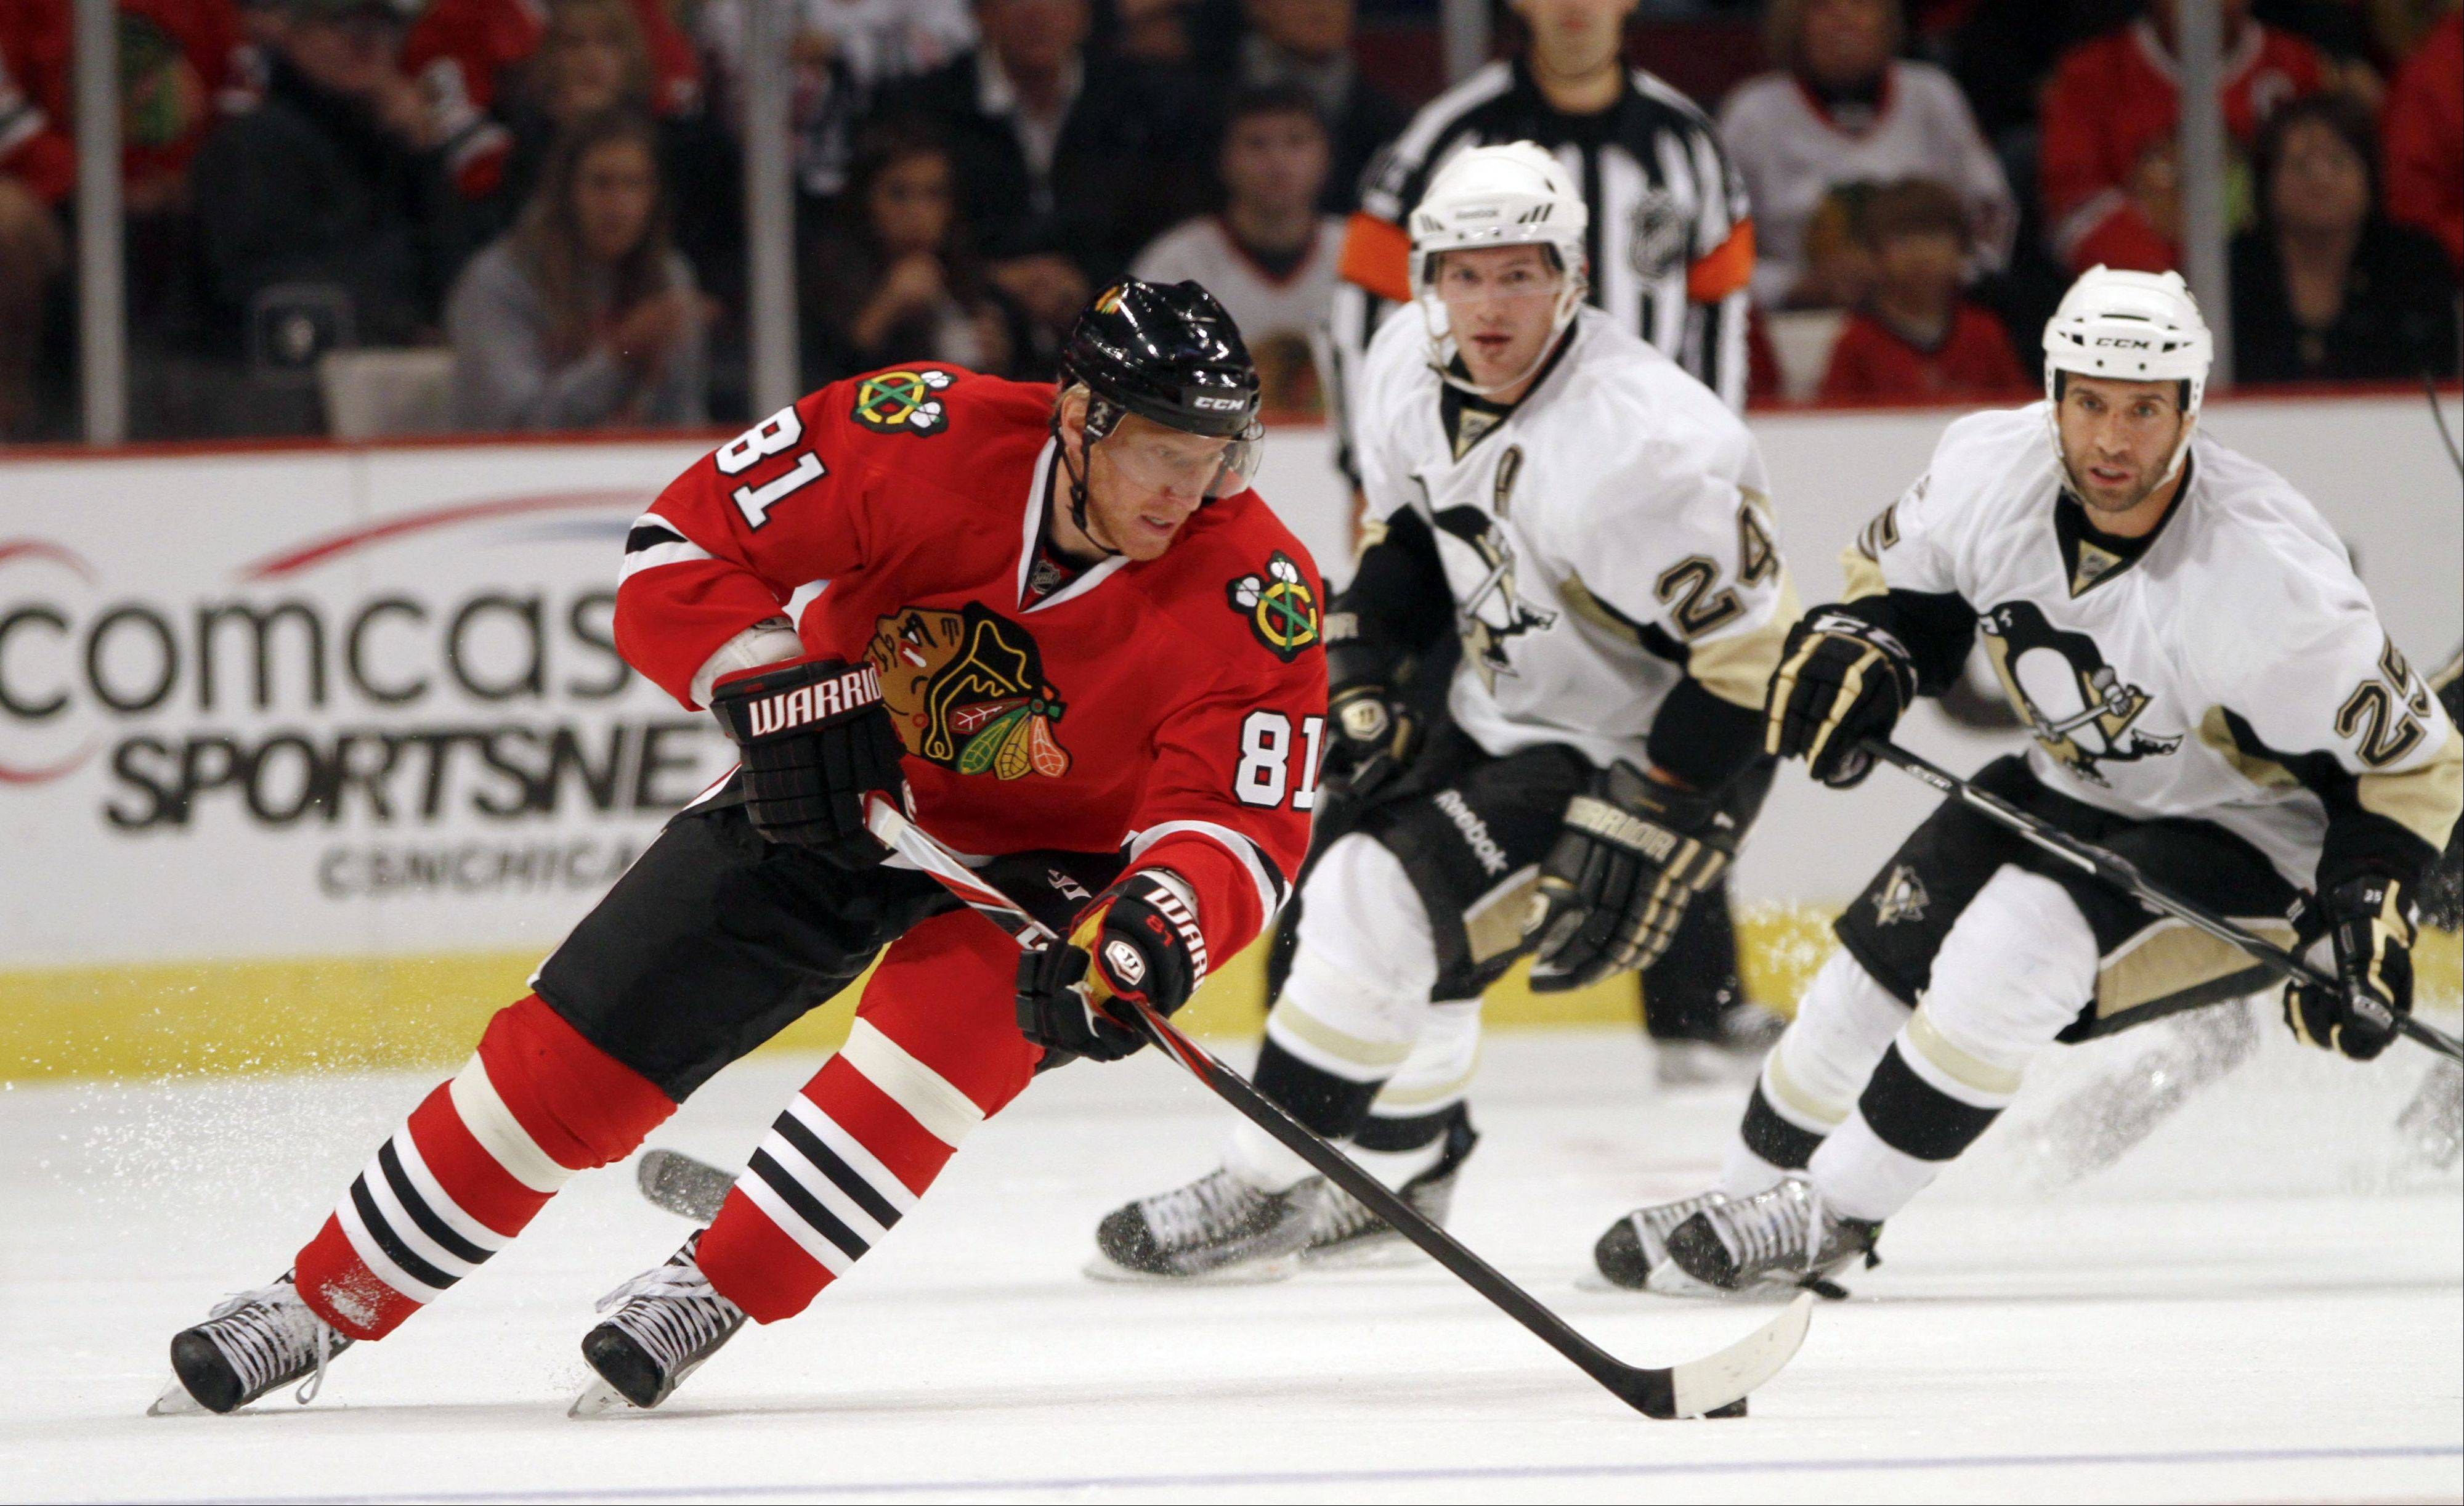 Marian Hossa has been excused from Blackhawks training camp. He is in Slovakia, mourning the death of Pavol Demitra.